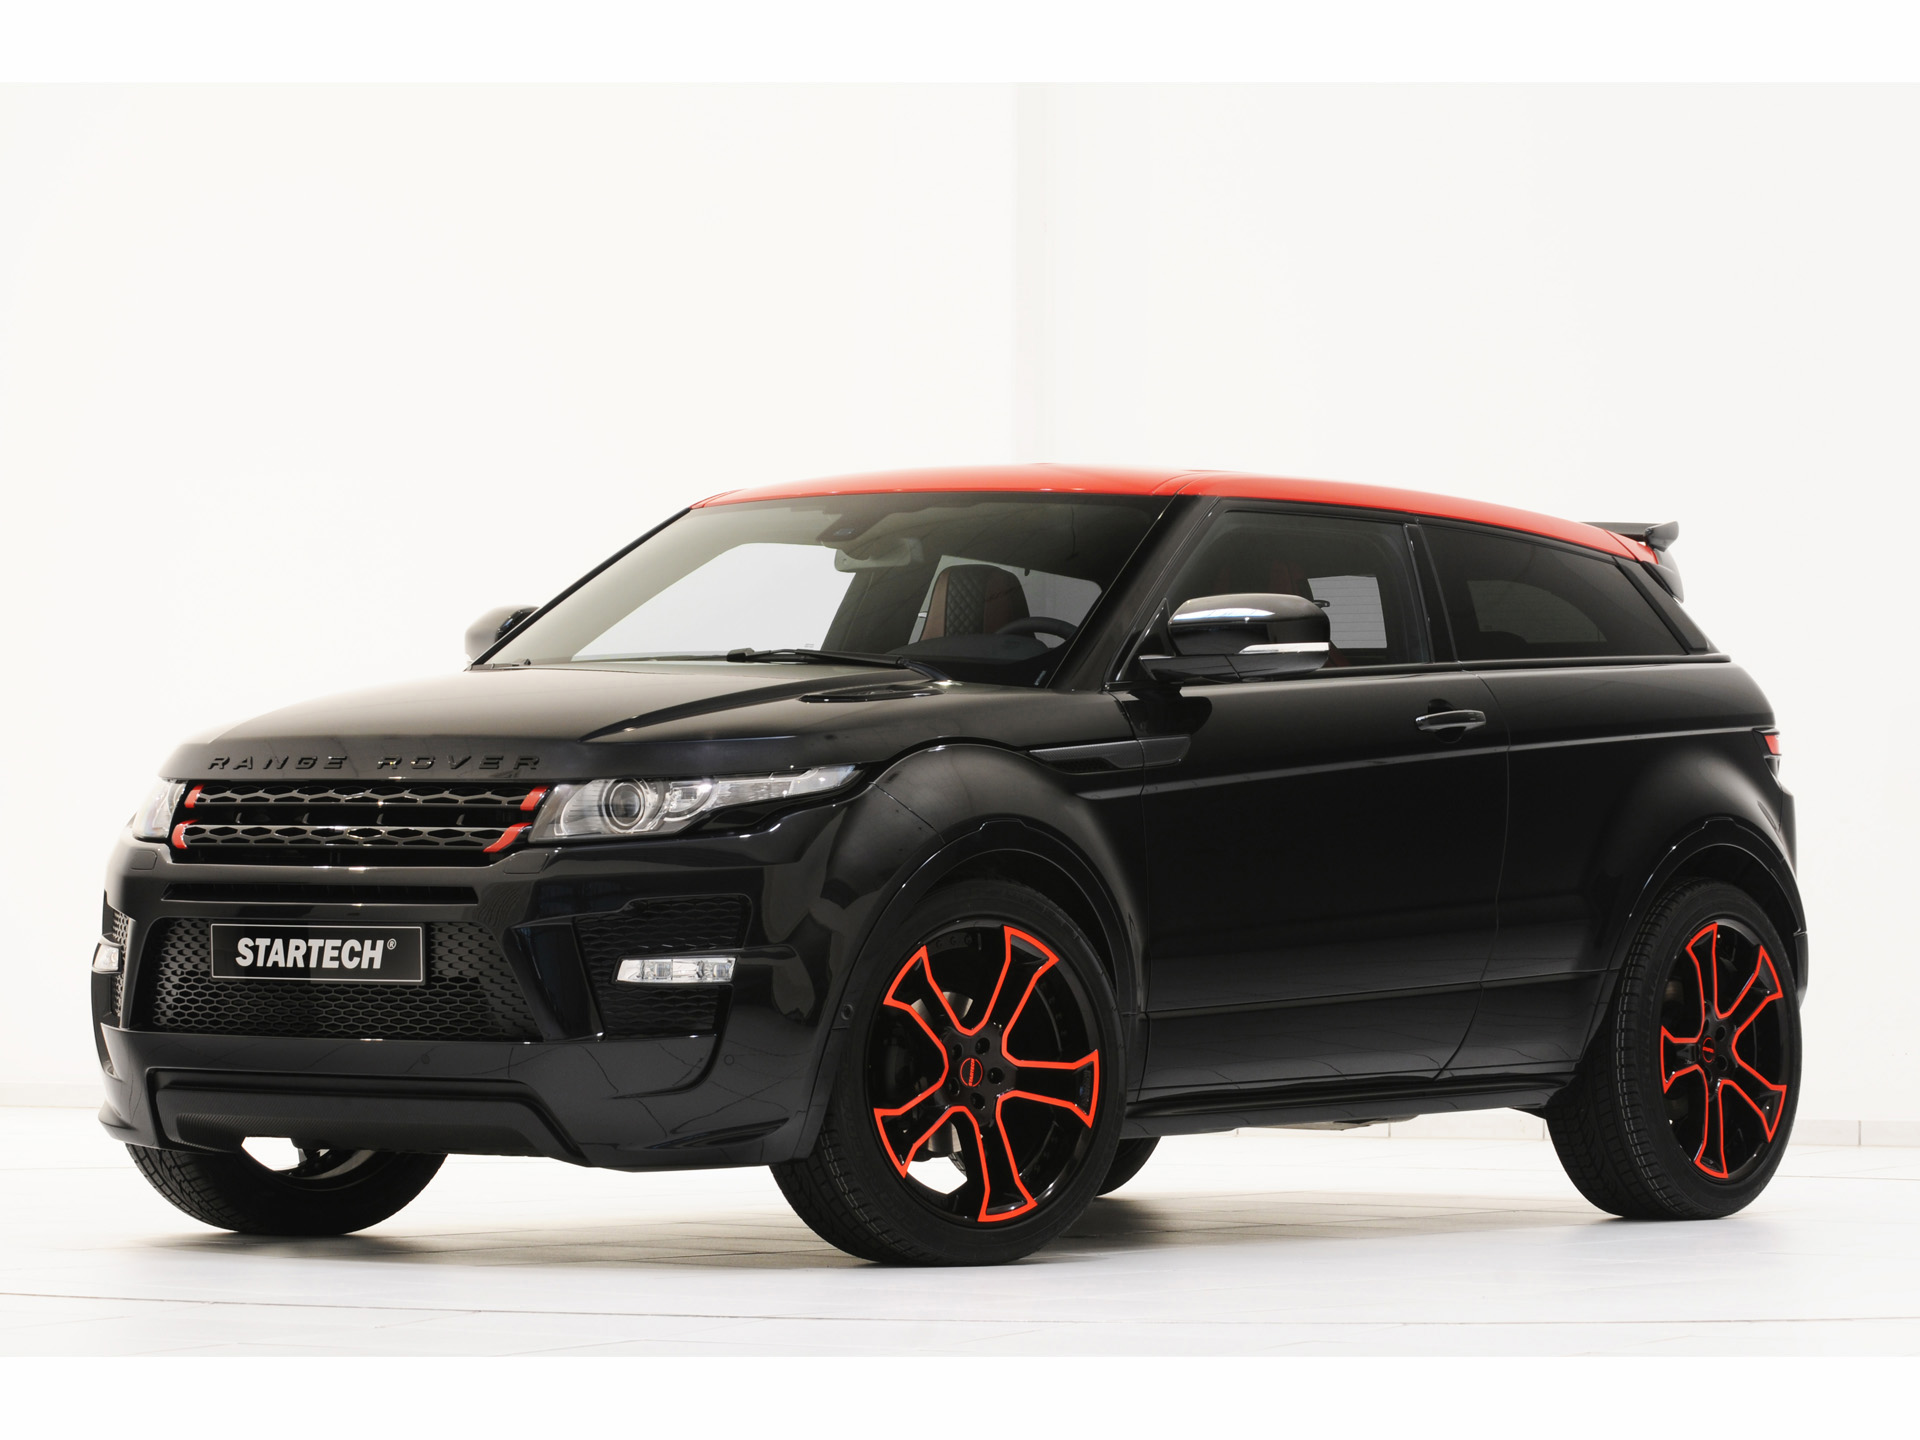 2011 land rover dc100 concept side 2 1280x960 wallpaper - 2011 Land Rover Dc100 Concept Side 2 1280x960 Wallpaper 59